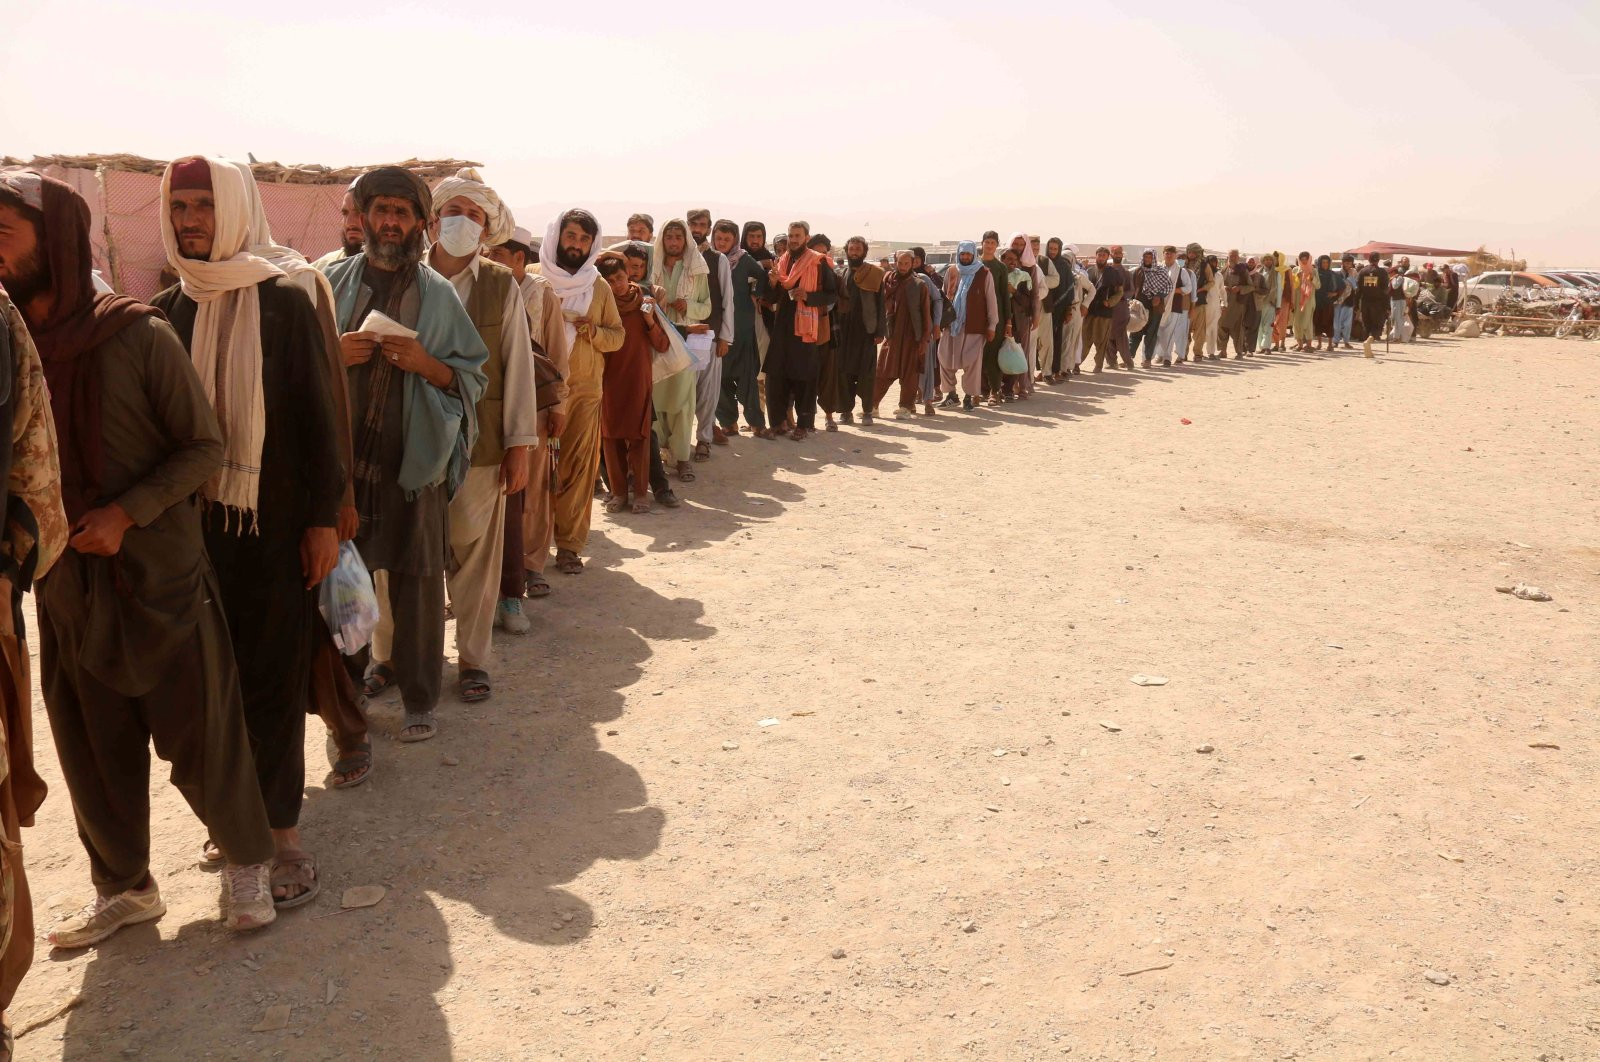 People line up to cross into Afghanistan at Chaman border point, in Pakistan, Sept. 2, 2021. (EPA/STRINGER)